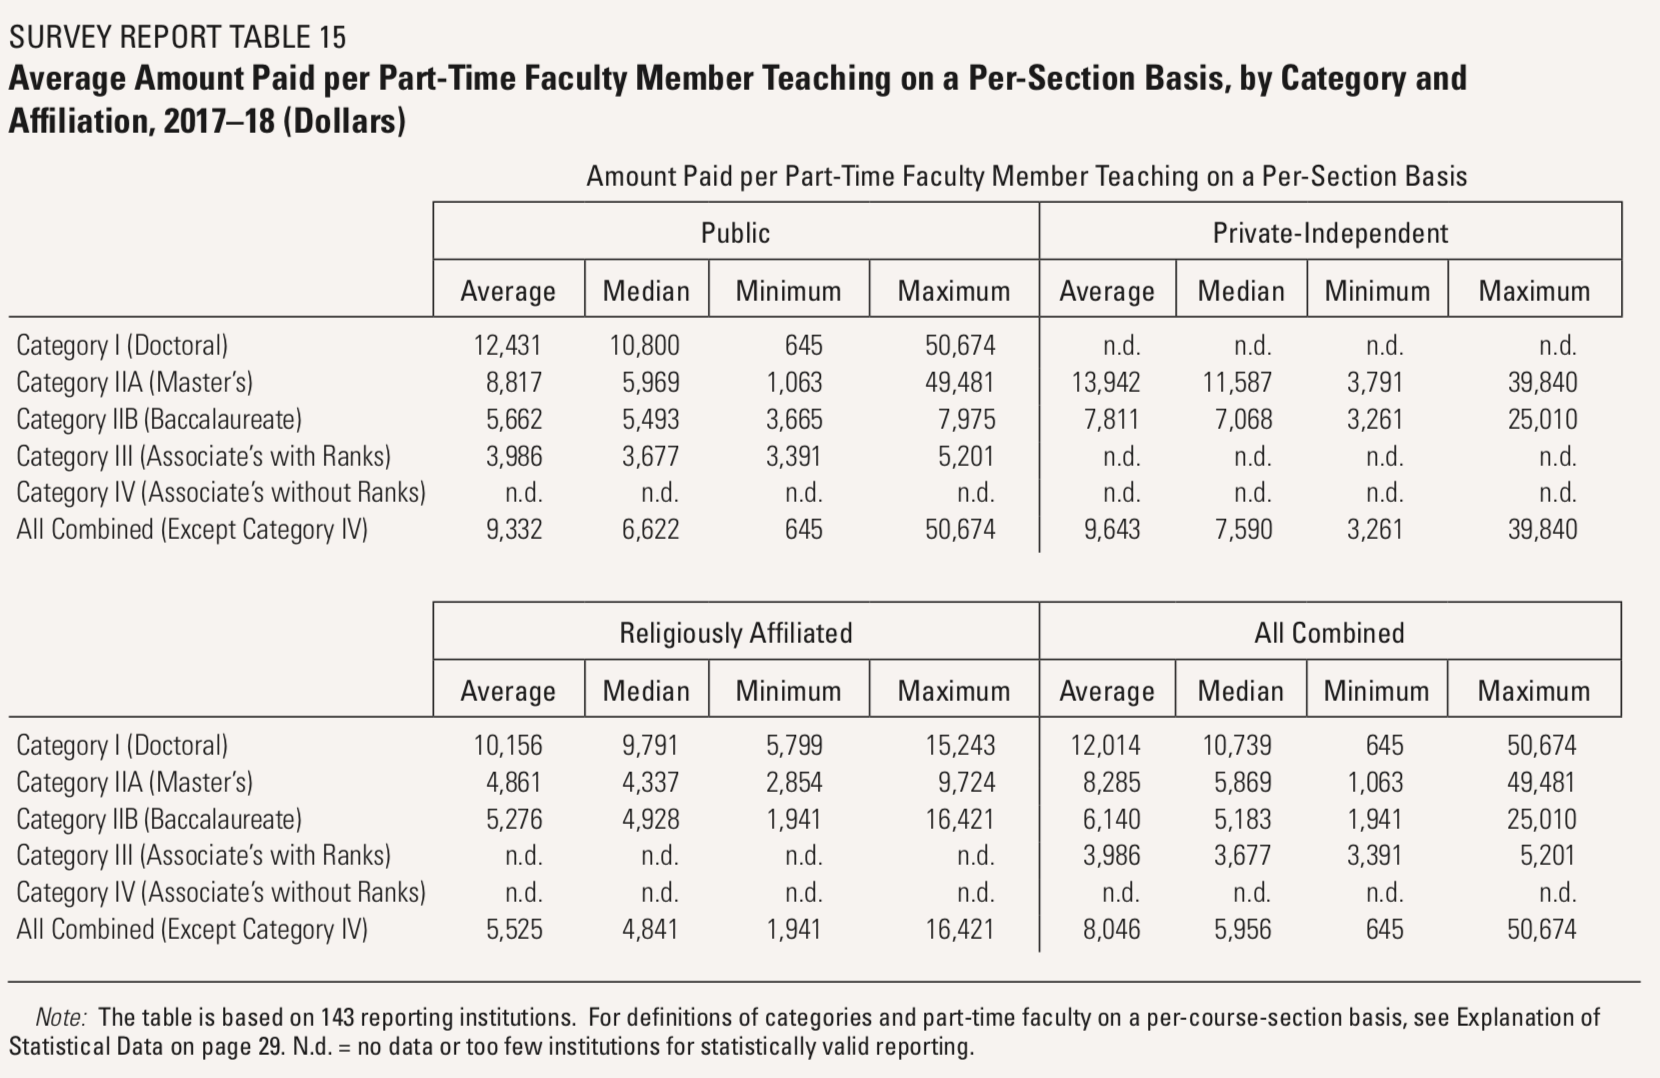 Survey Report Table 15: Average Amount Paid per Part-Time Faculty Member Teaching on a Per-Section Basis, by Category and Affiliation, 2017-18